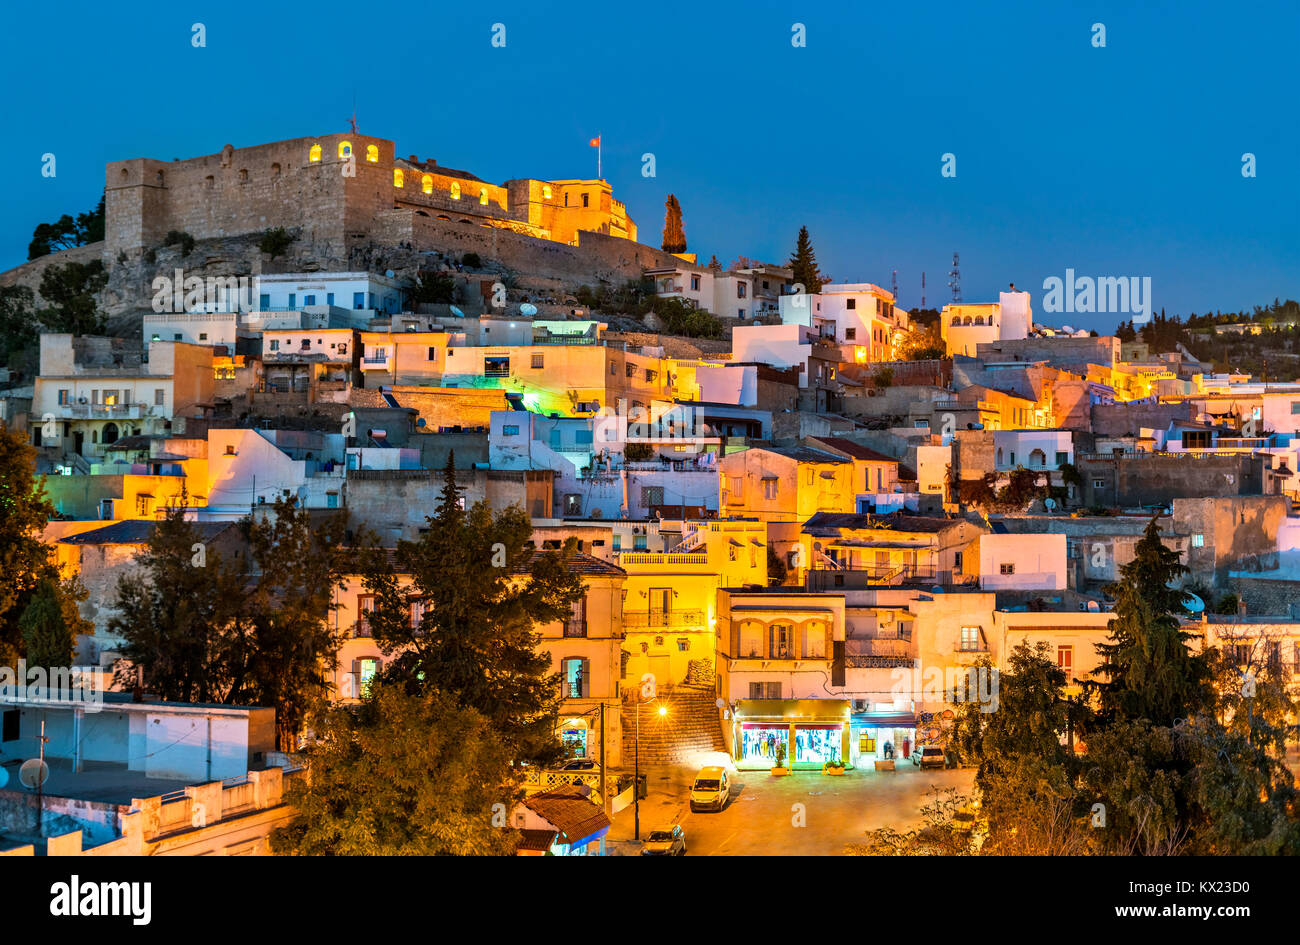 Night skyline of El Kef, a city in northwestern Tunisia - Stock Image